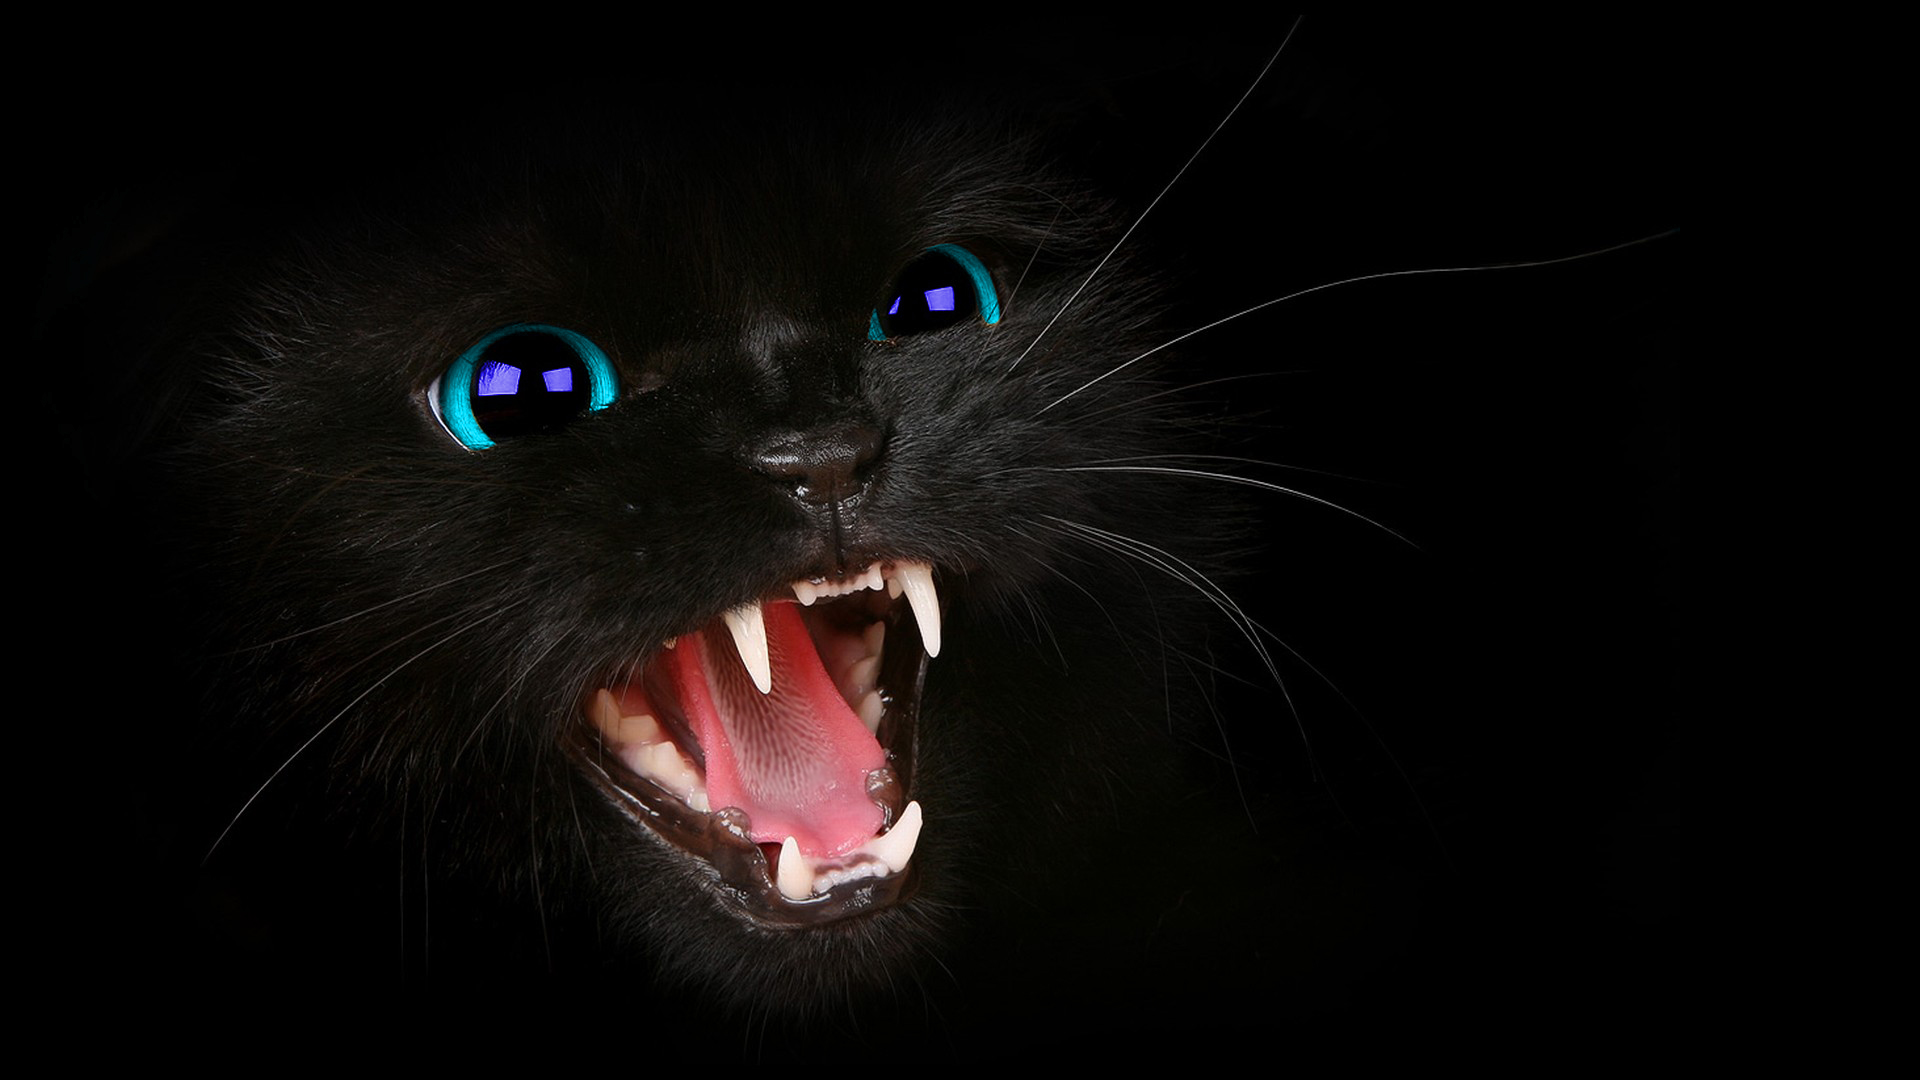 HD Black Cat BLue Eyes WallPaper by HarriePatemanDesigns on 1920x1080